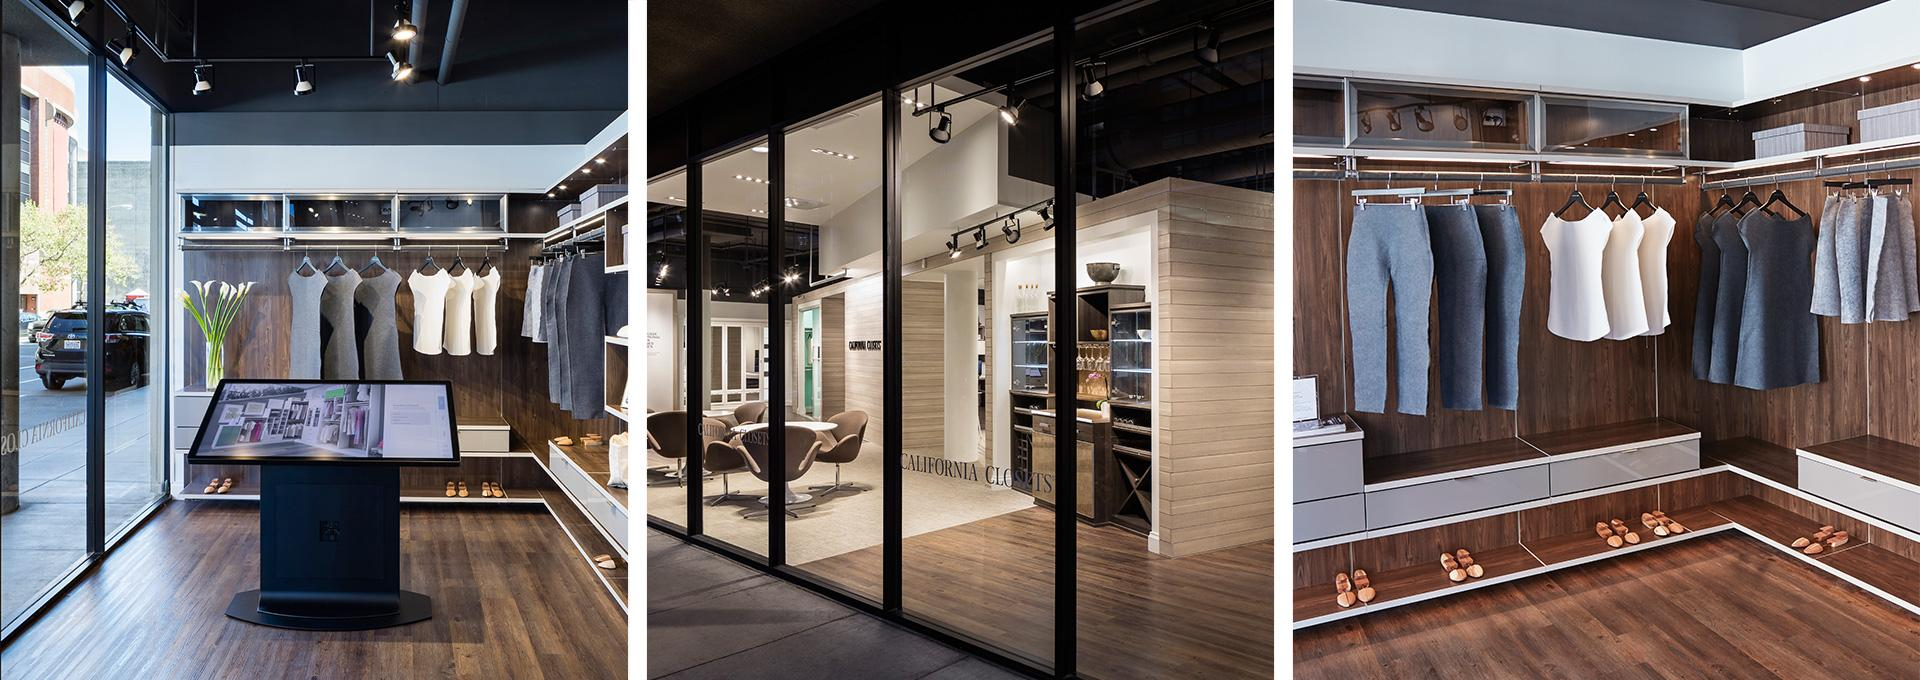 CC-Canada_Hero-showroom_1920x680